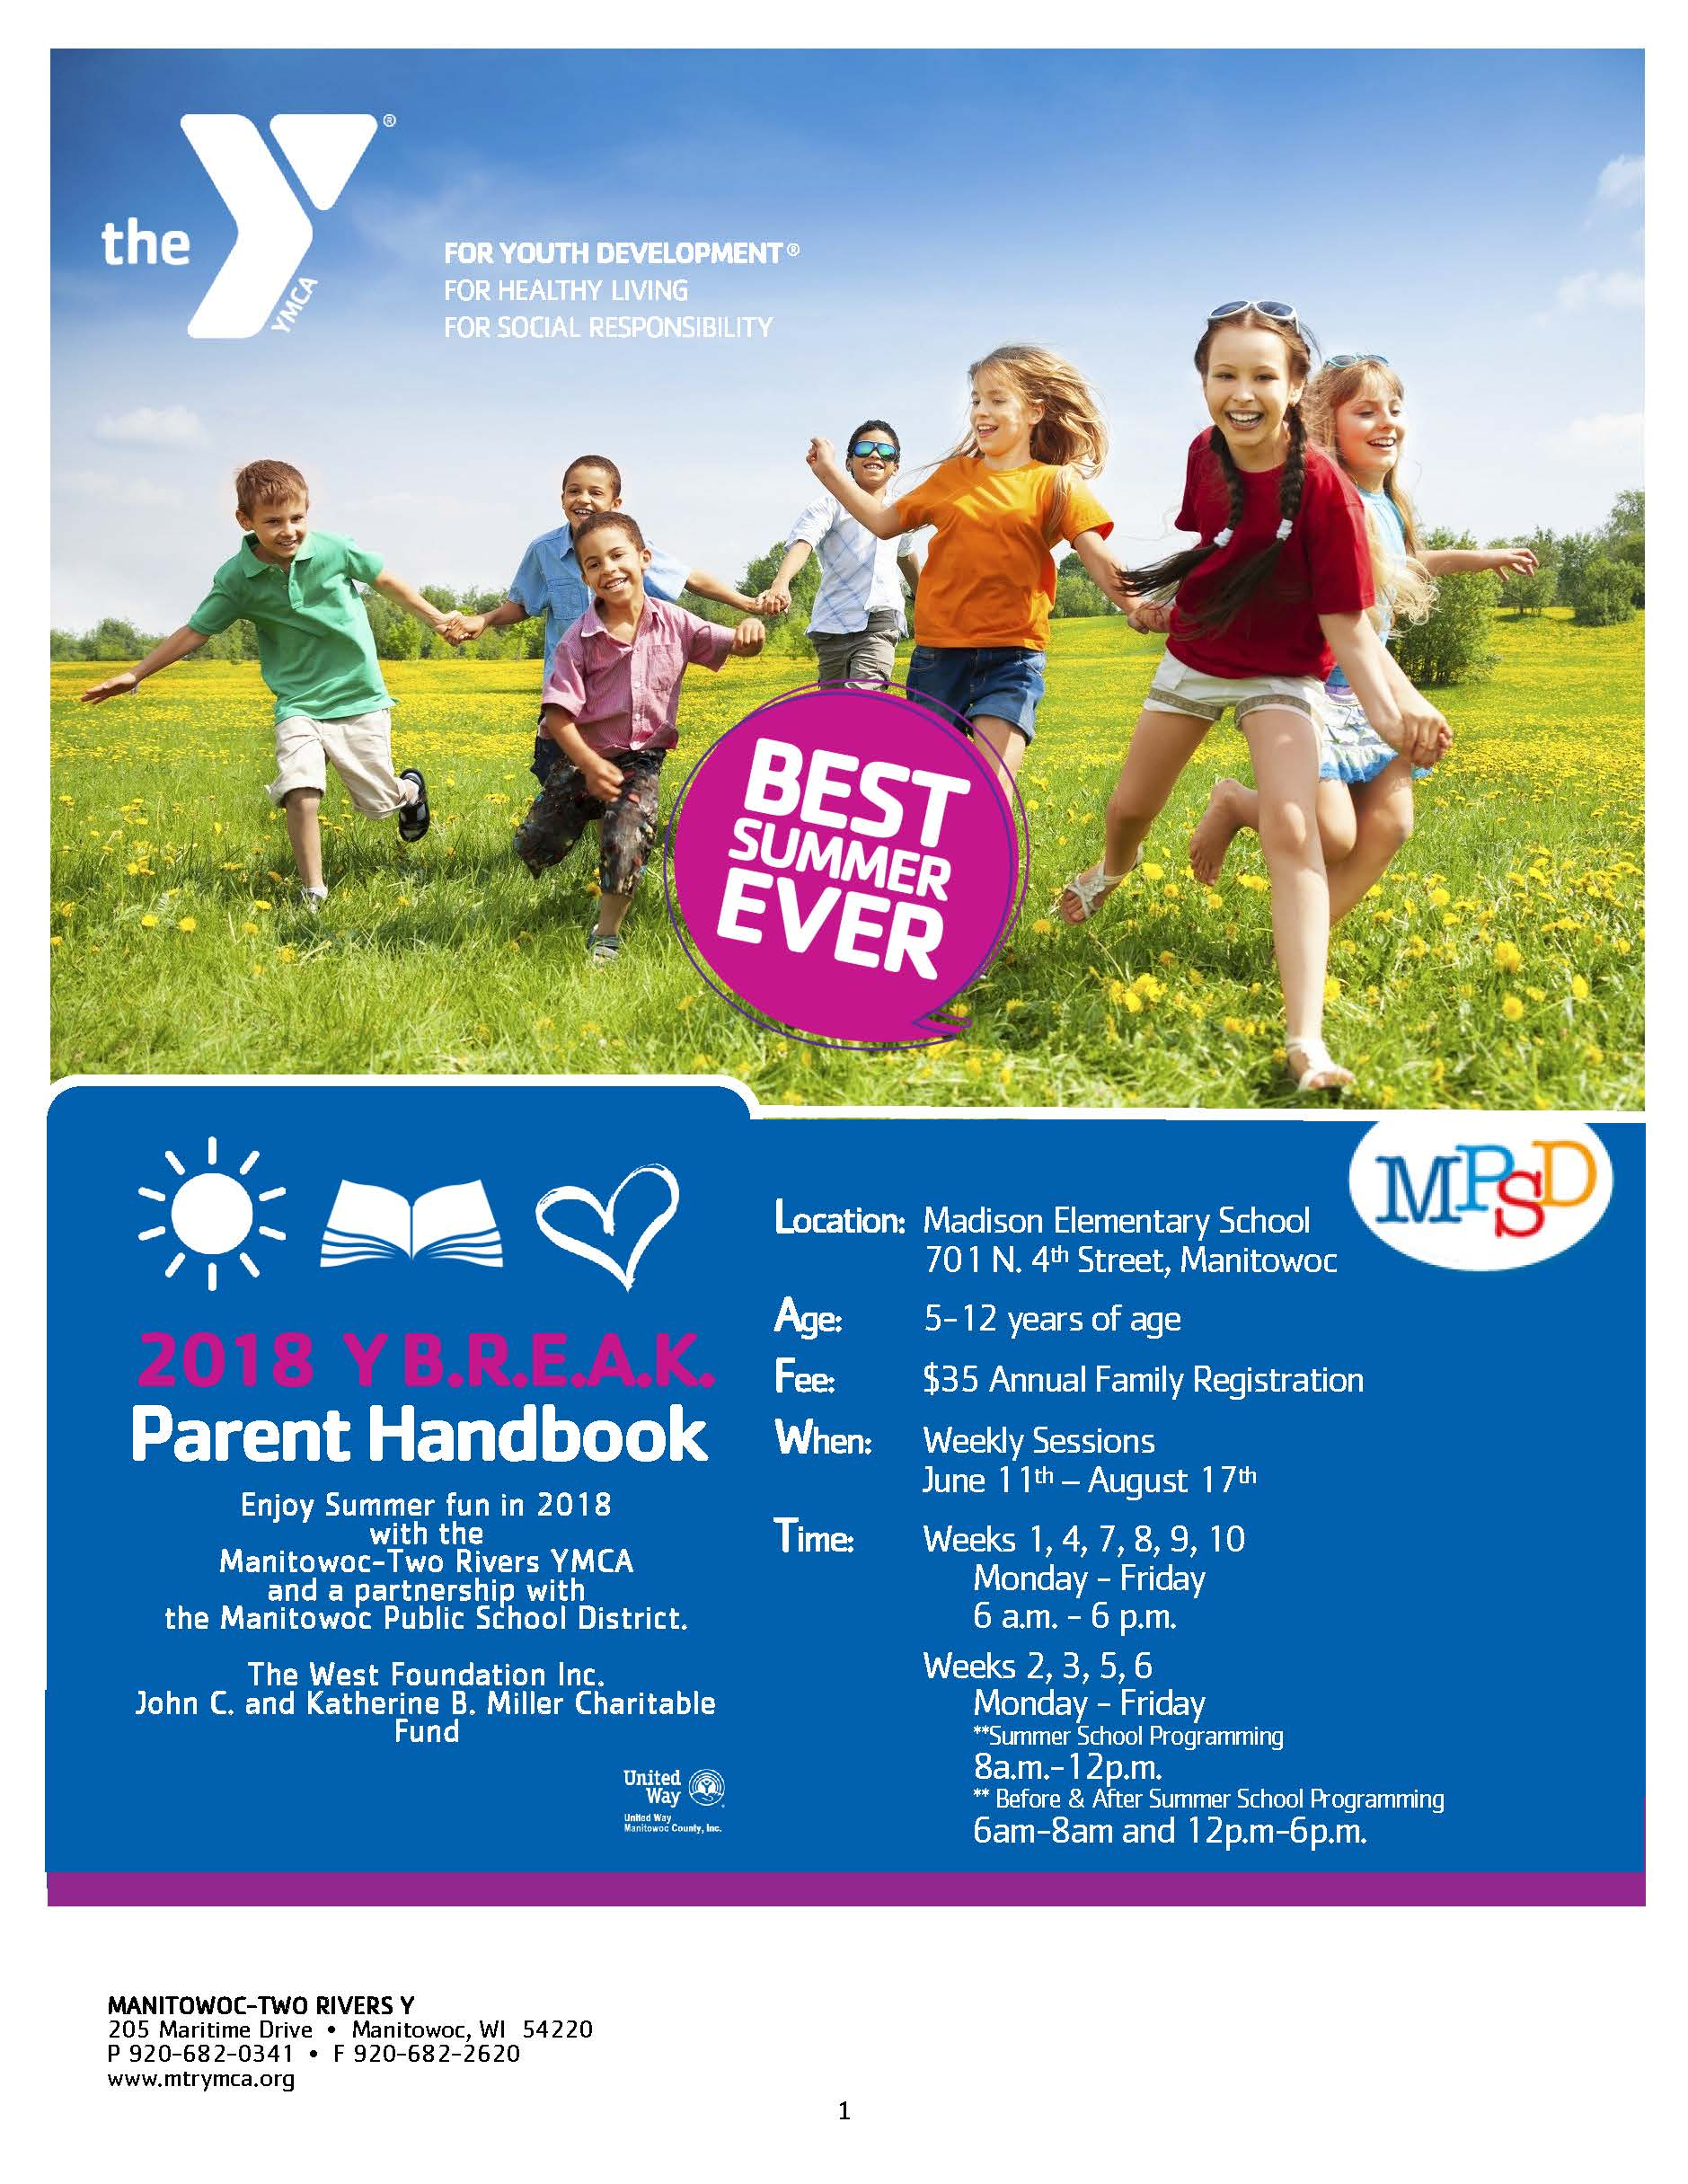 http://mtrymca.org/sites/mtrymca.org/assets/images/programs/2018-Y-BREAK---Parent-Handbook.jpg